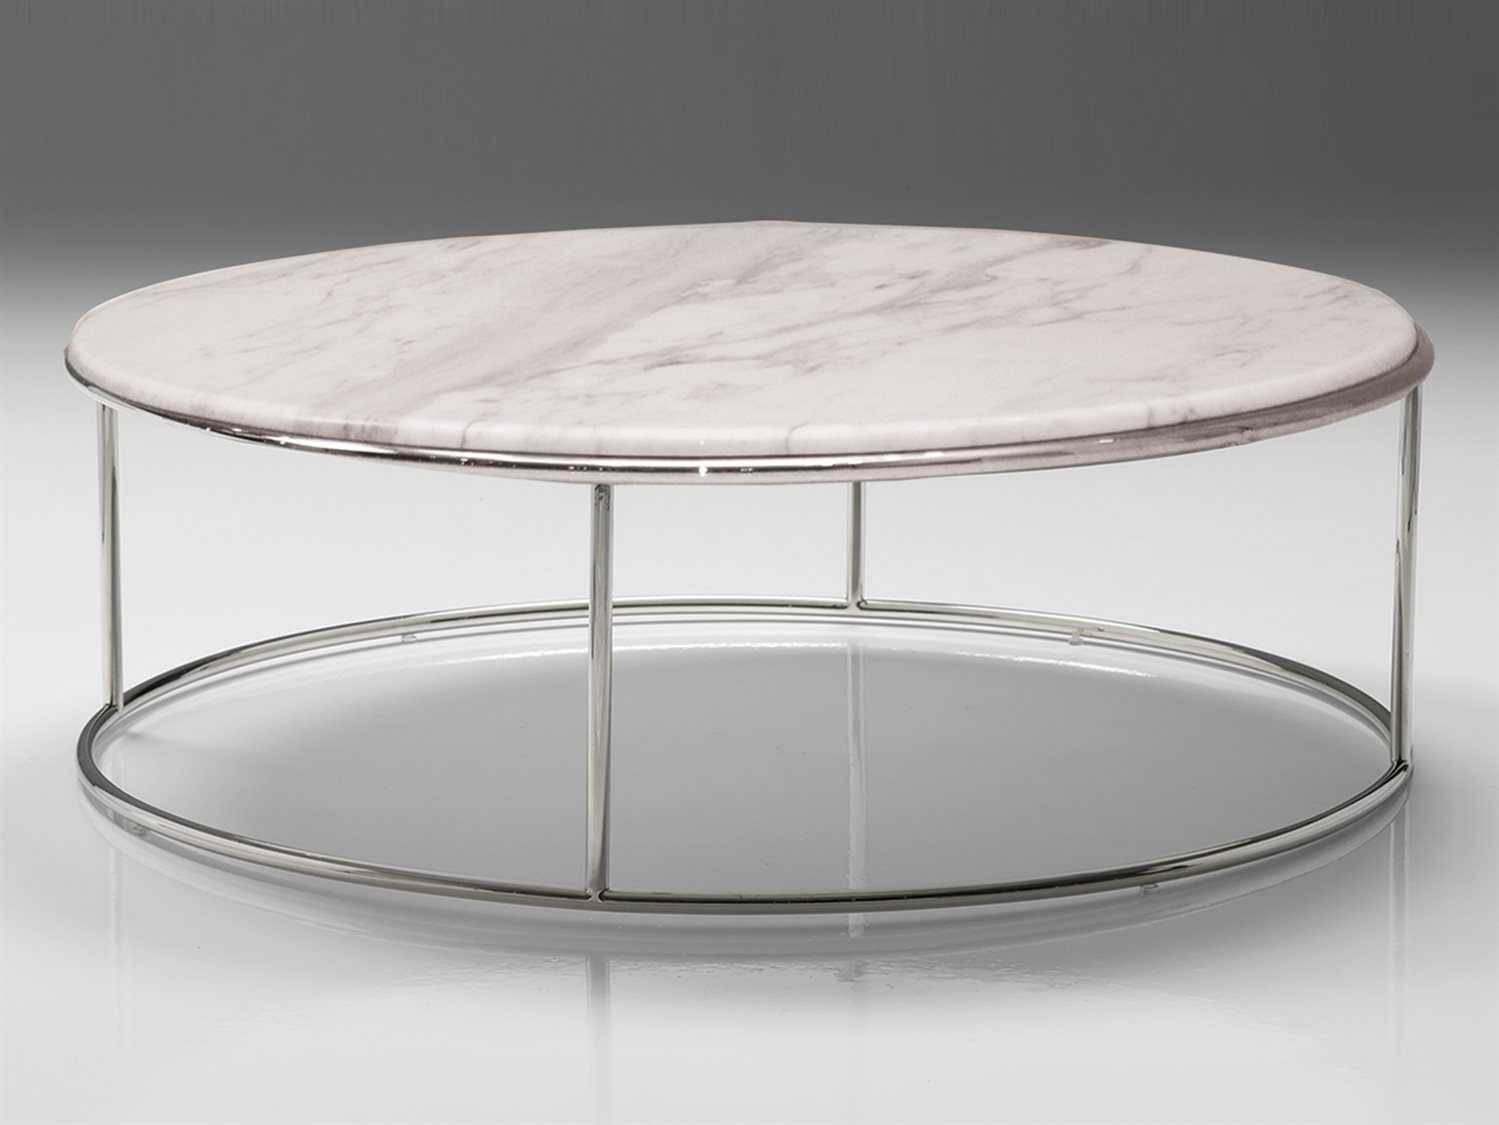 Mobital Elysee 39 Round Marble Coffee Table | Mbwcoelysmarb pertaining to White Marble Coffee Tables (Image 22 of 30)